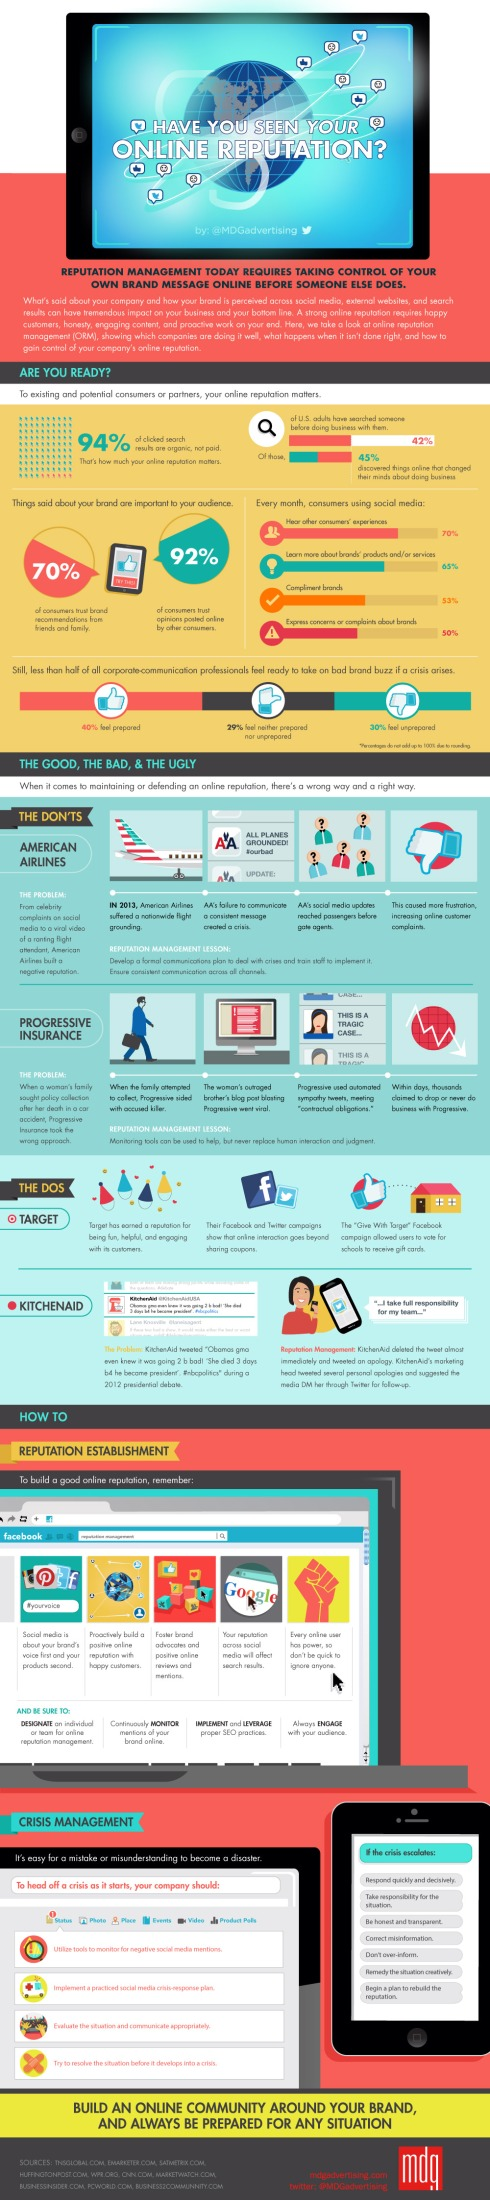 building a strong online reputation infographic